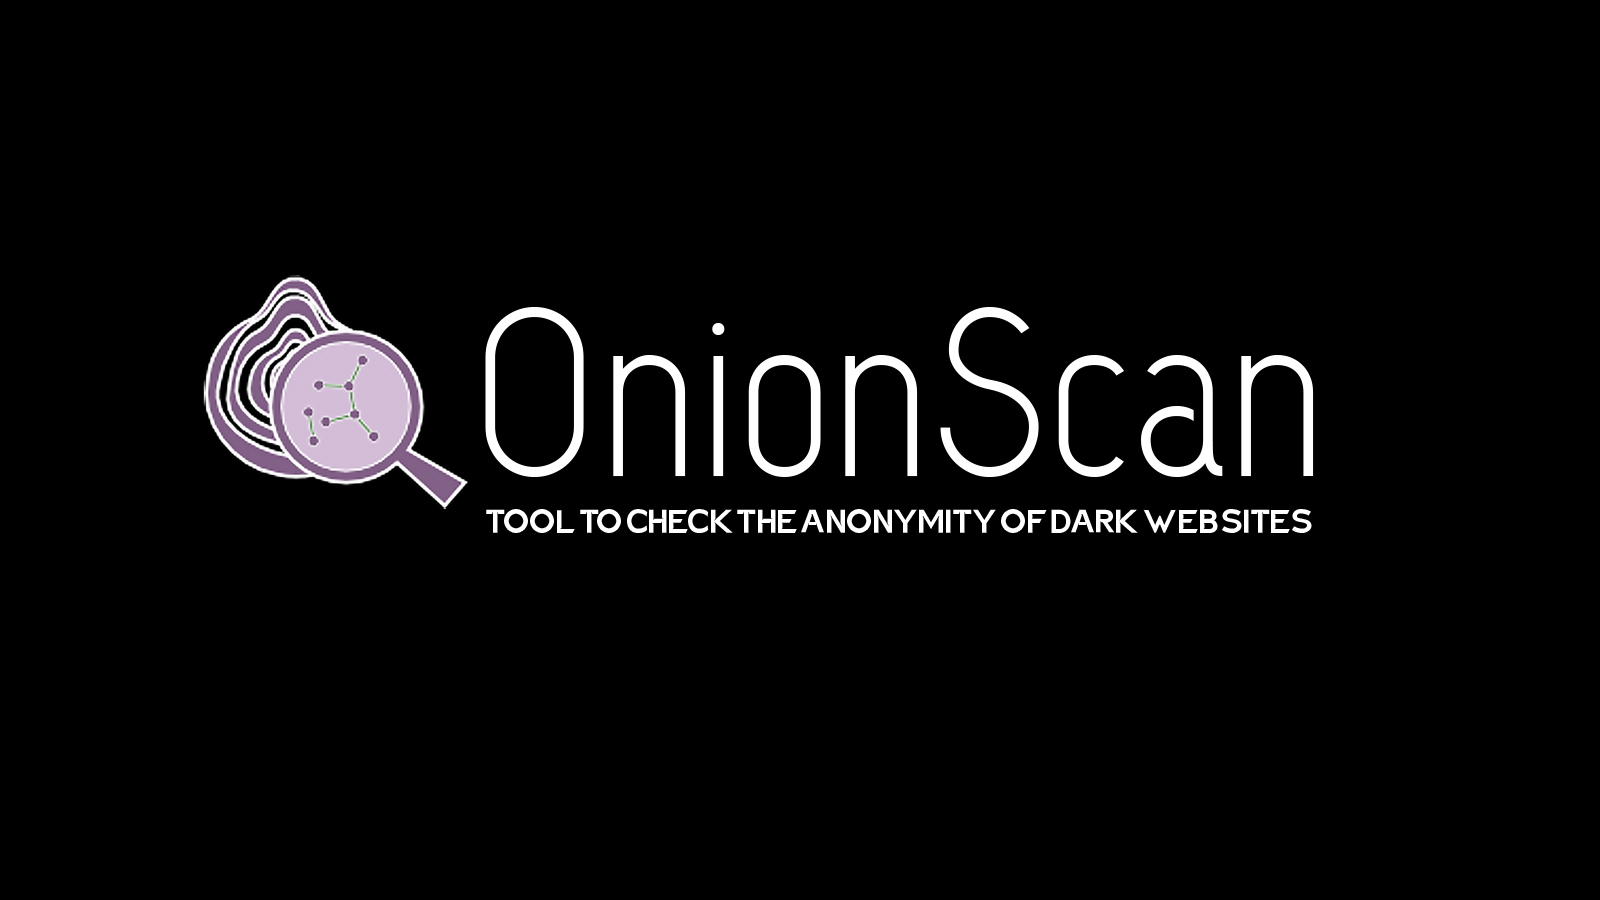 OnionScan - Tool To Check the Anonymity Of Dark Web Sites